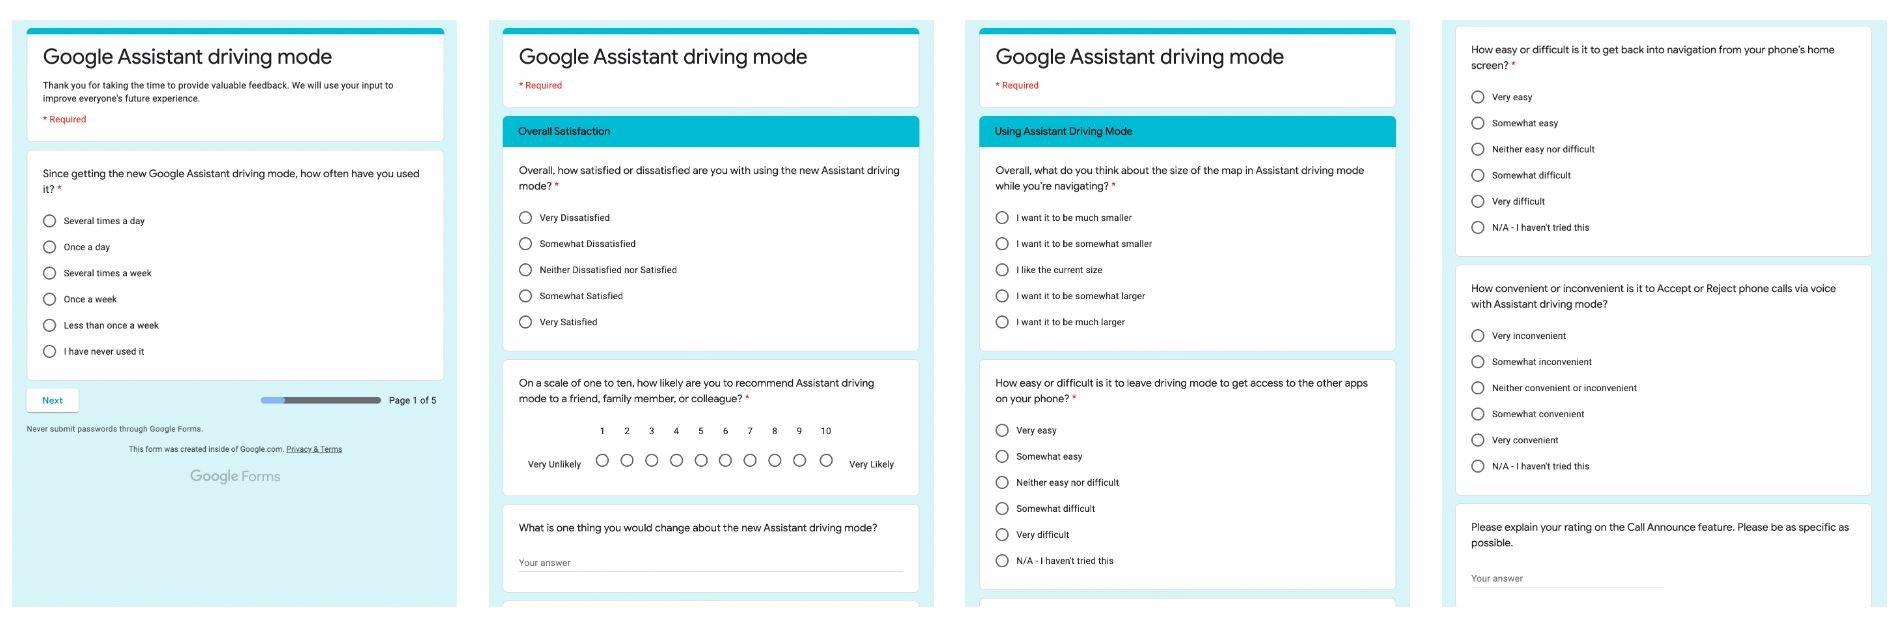 android auto google assistant driving mode umfrage screenshots